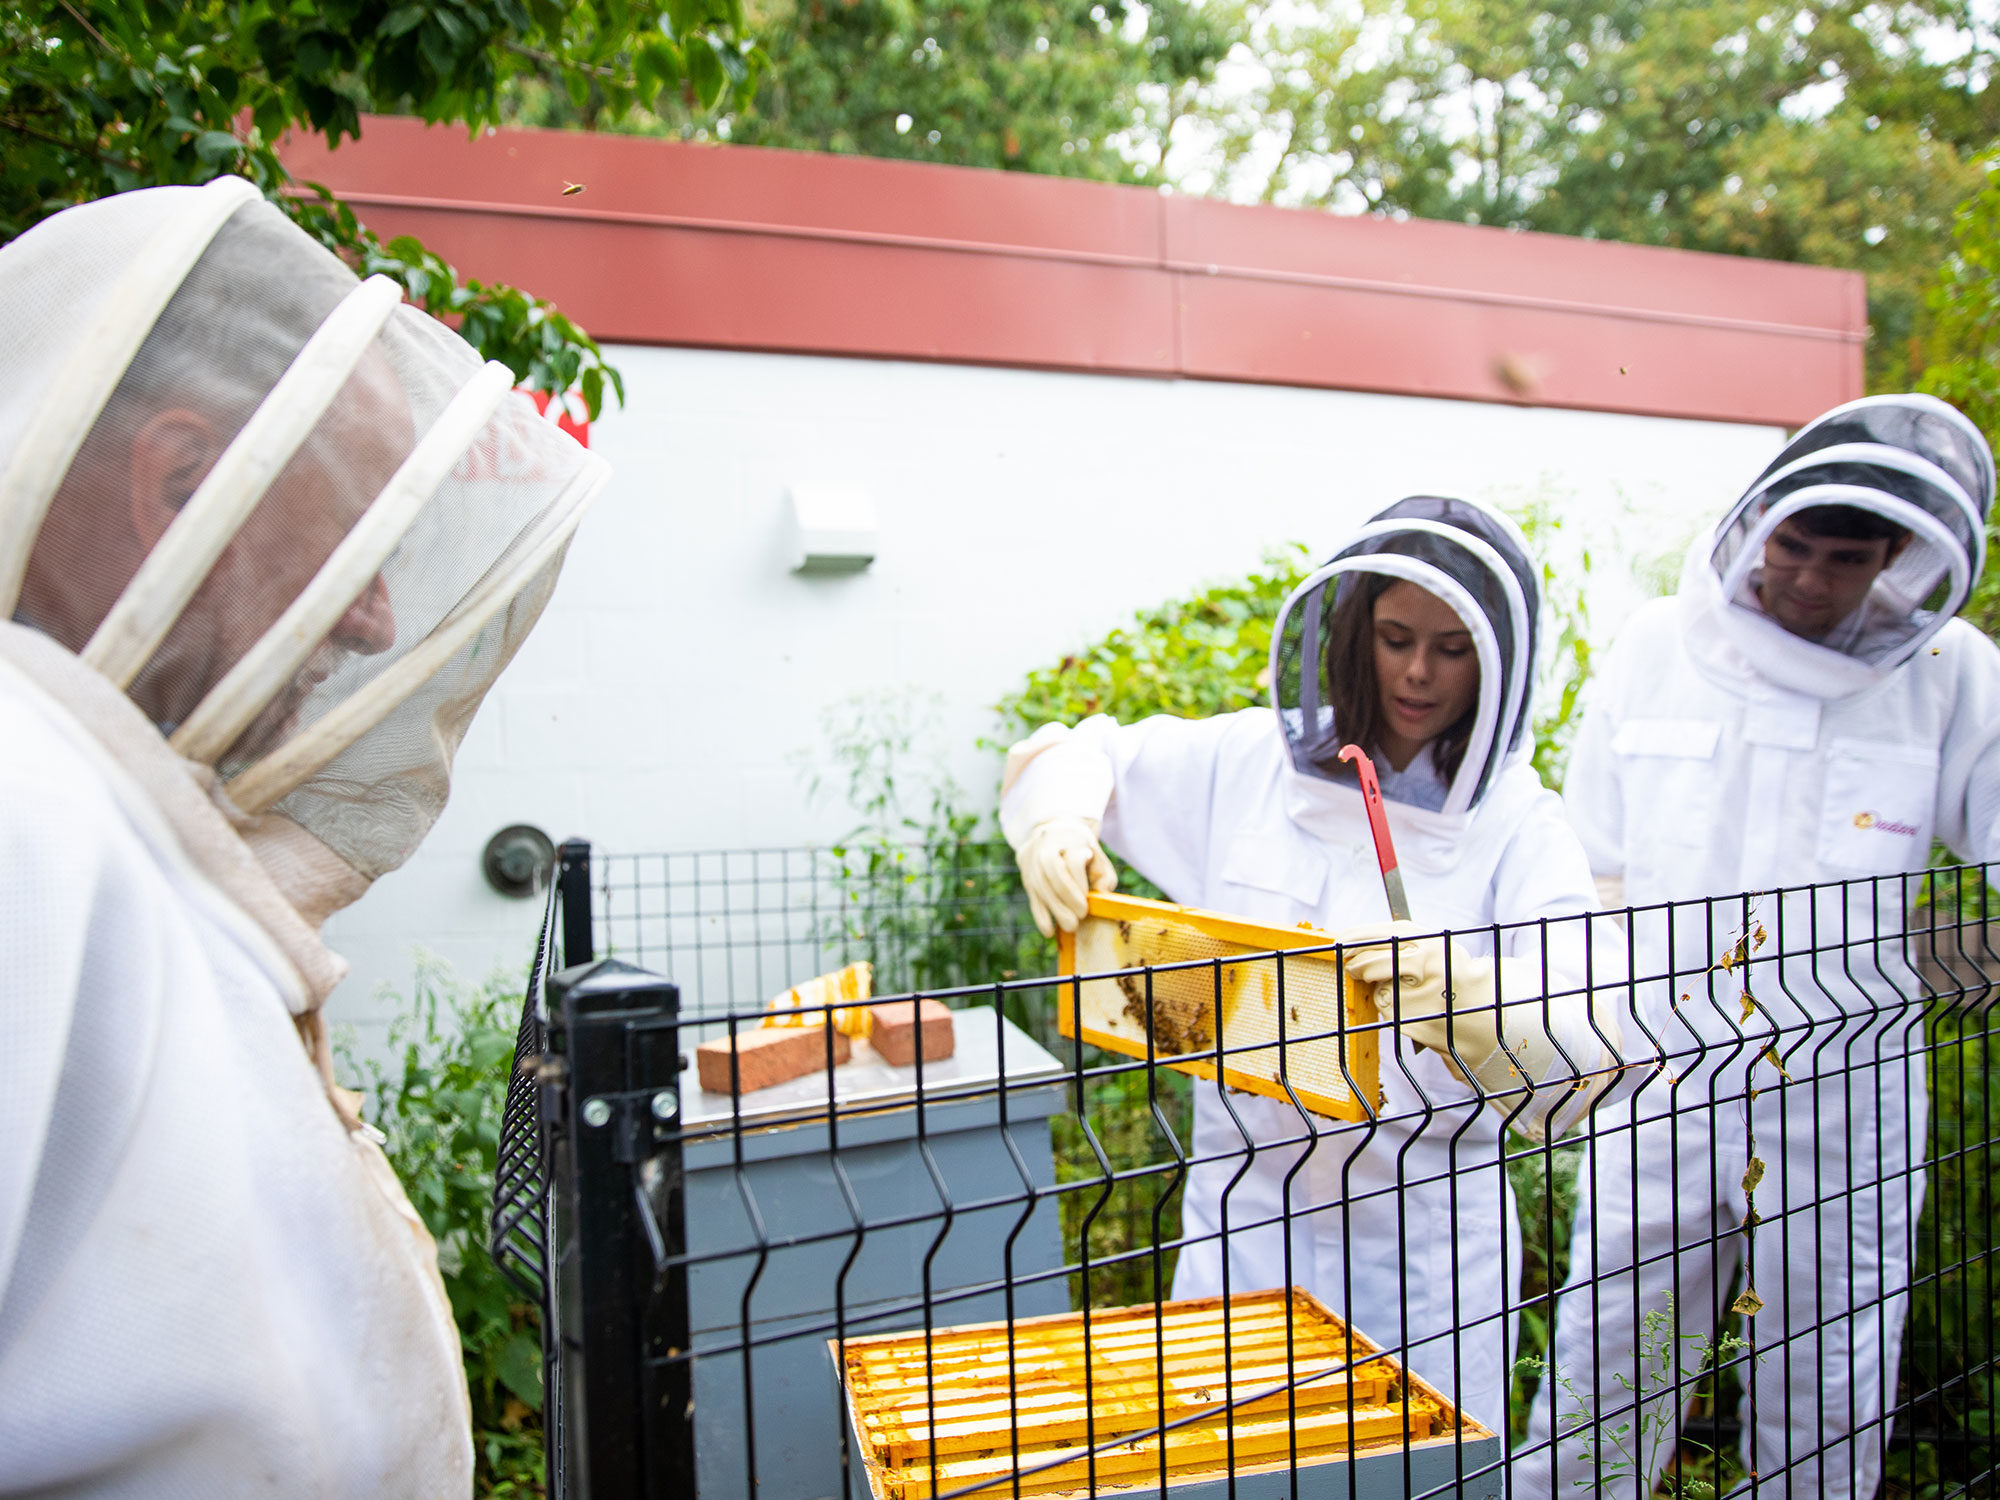 Students and professor work together at bee hives